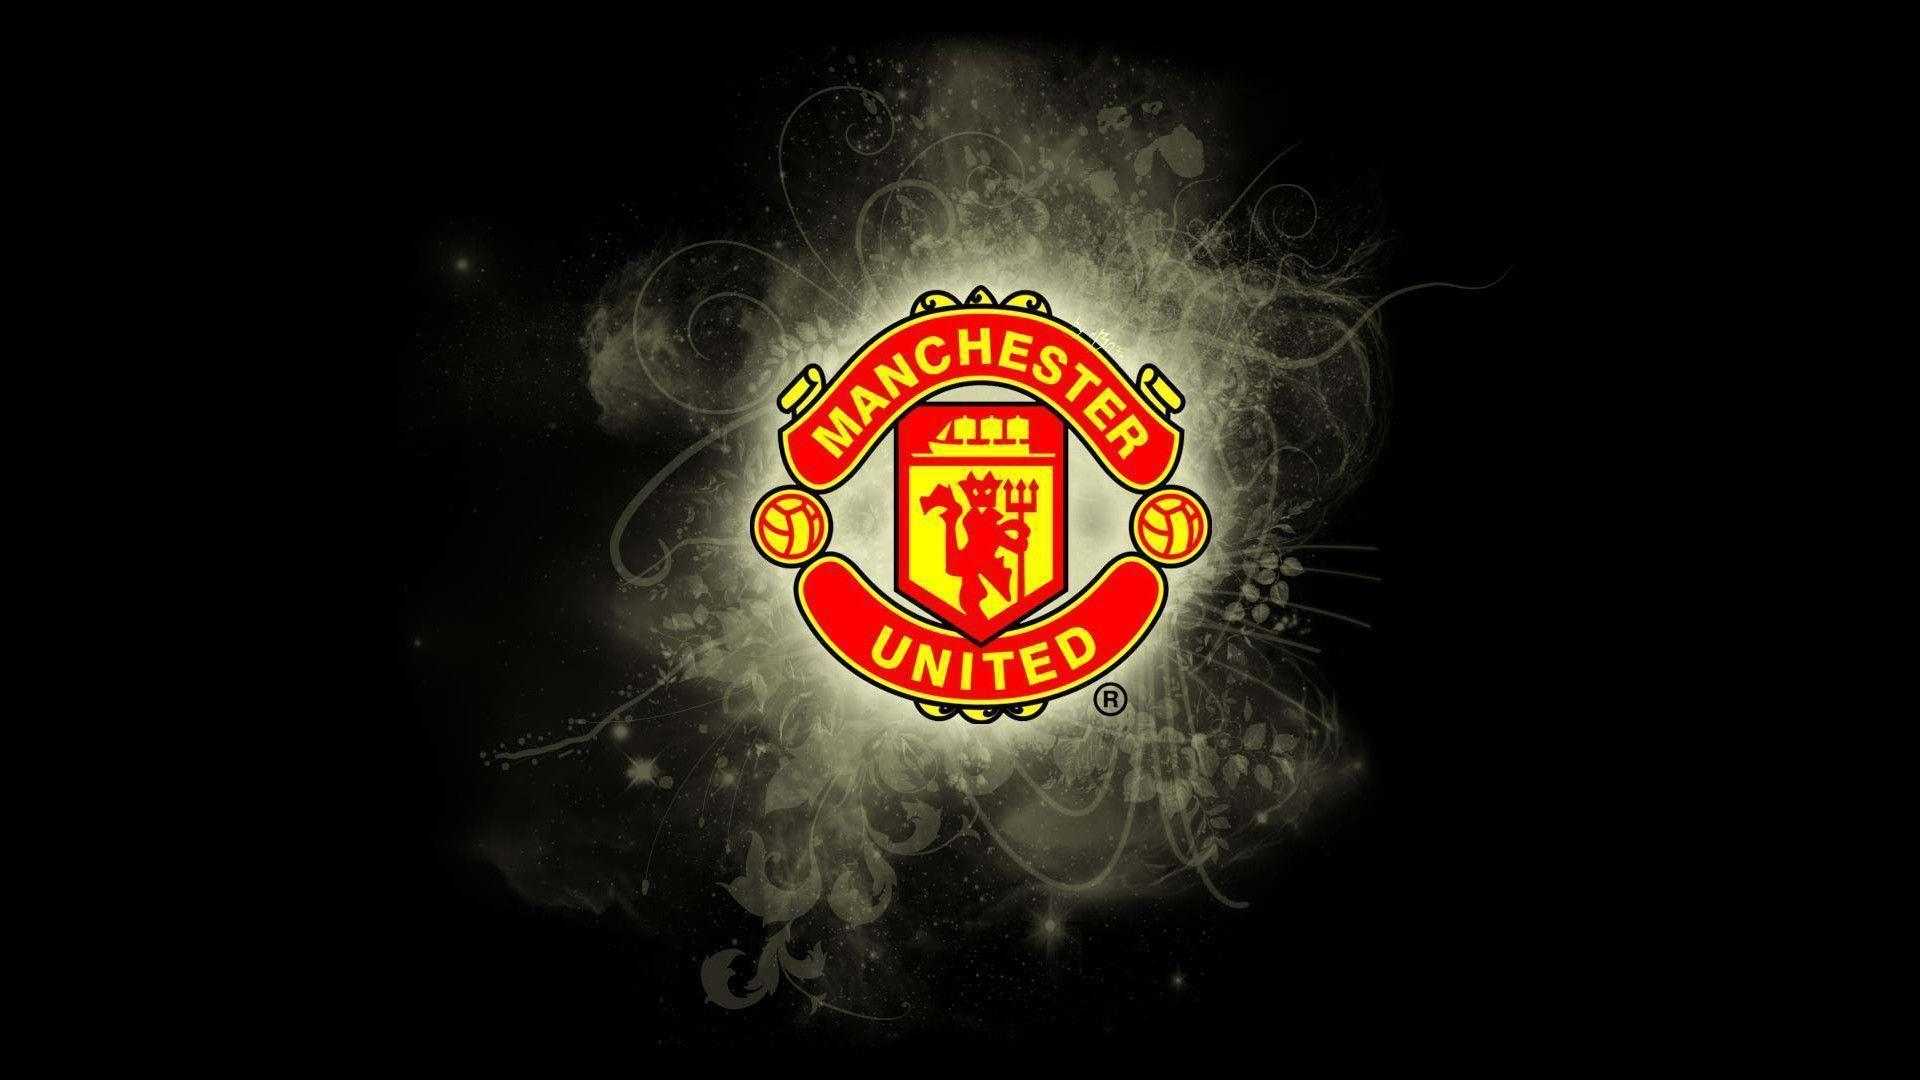 FC Manchester United Logo HD Wallpapers